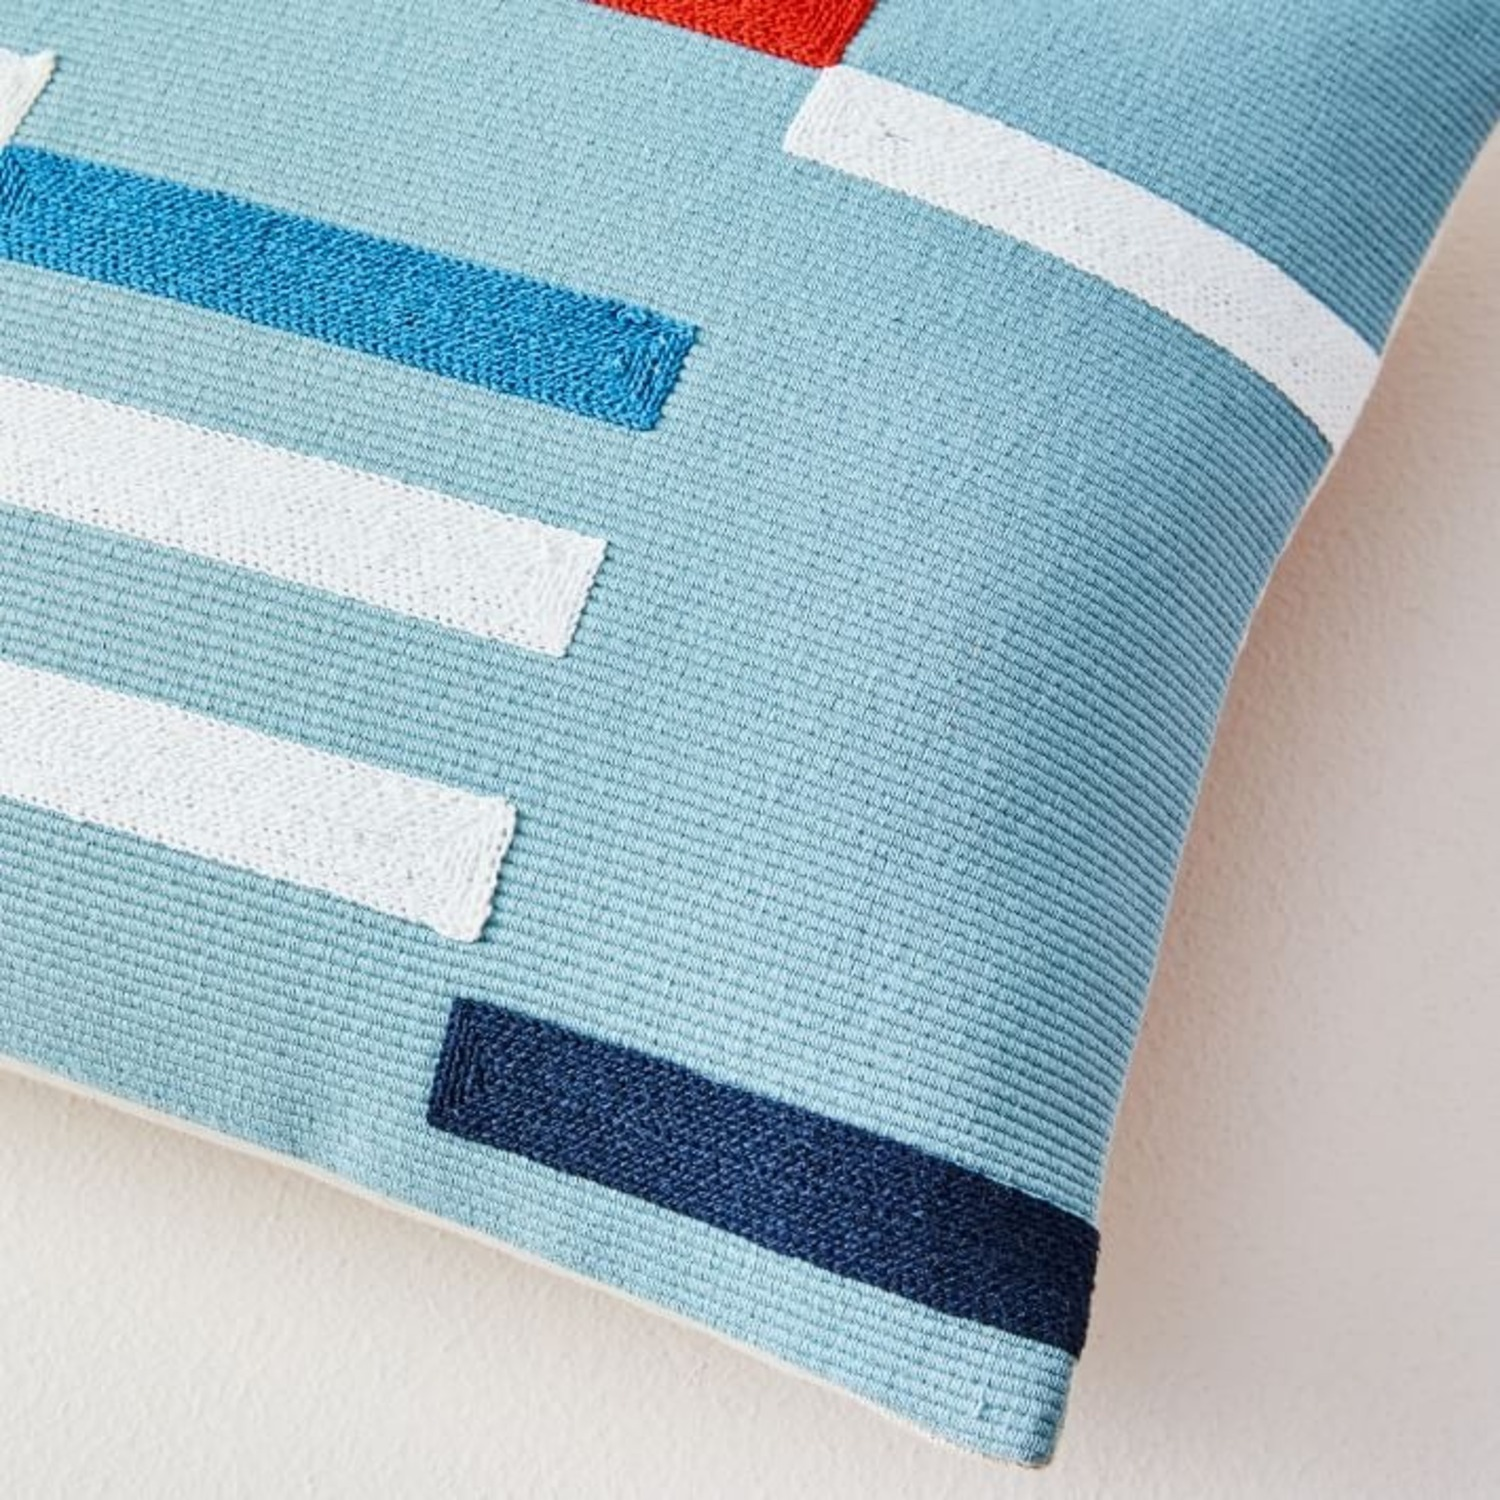 West Elm Margo Selby Staggered Stripe Pillow - image-3